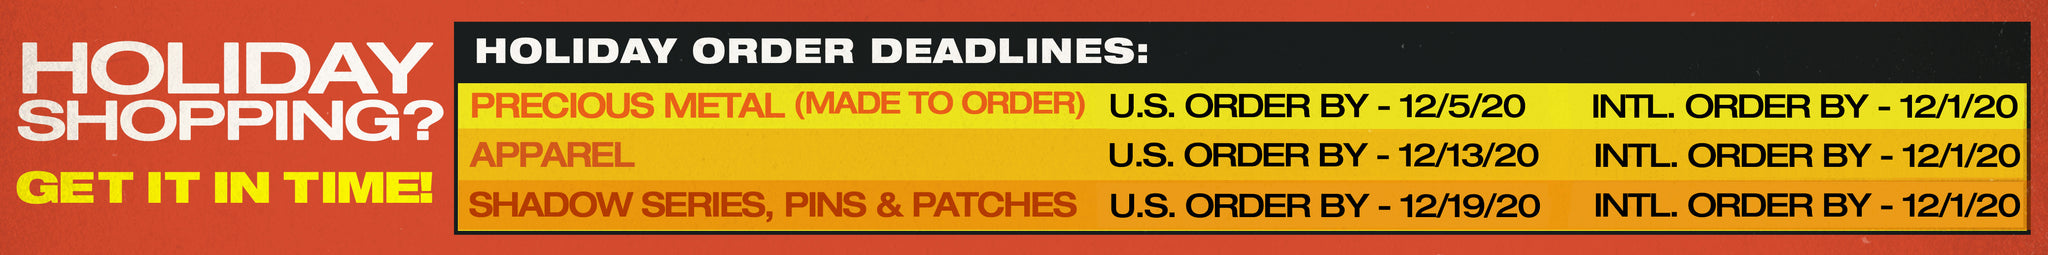 holiday deadlines, holiday cut off dates, holiday sale